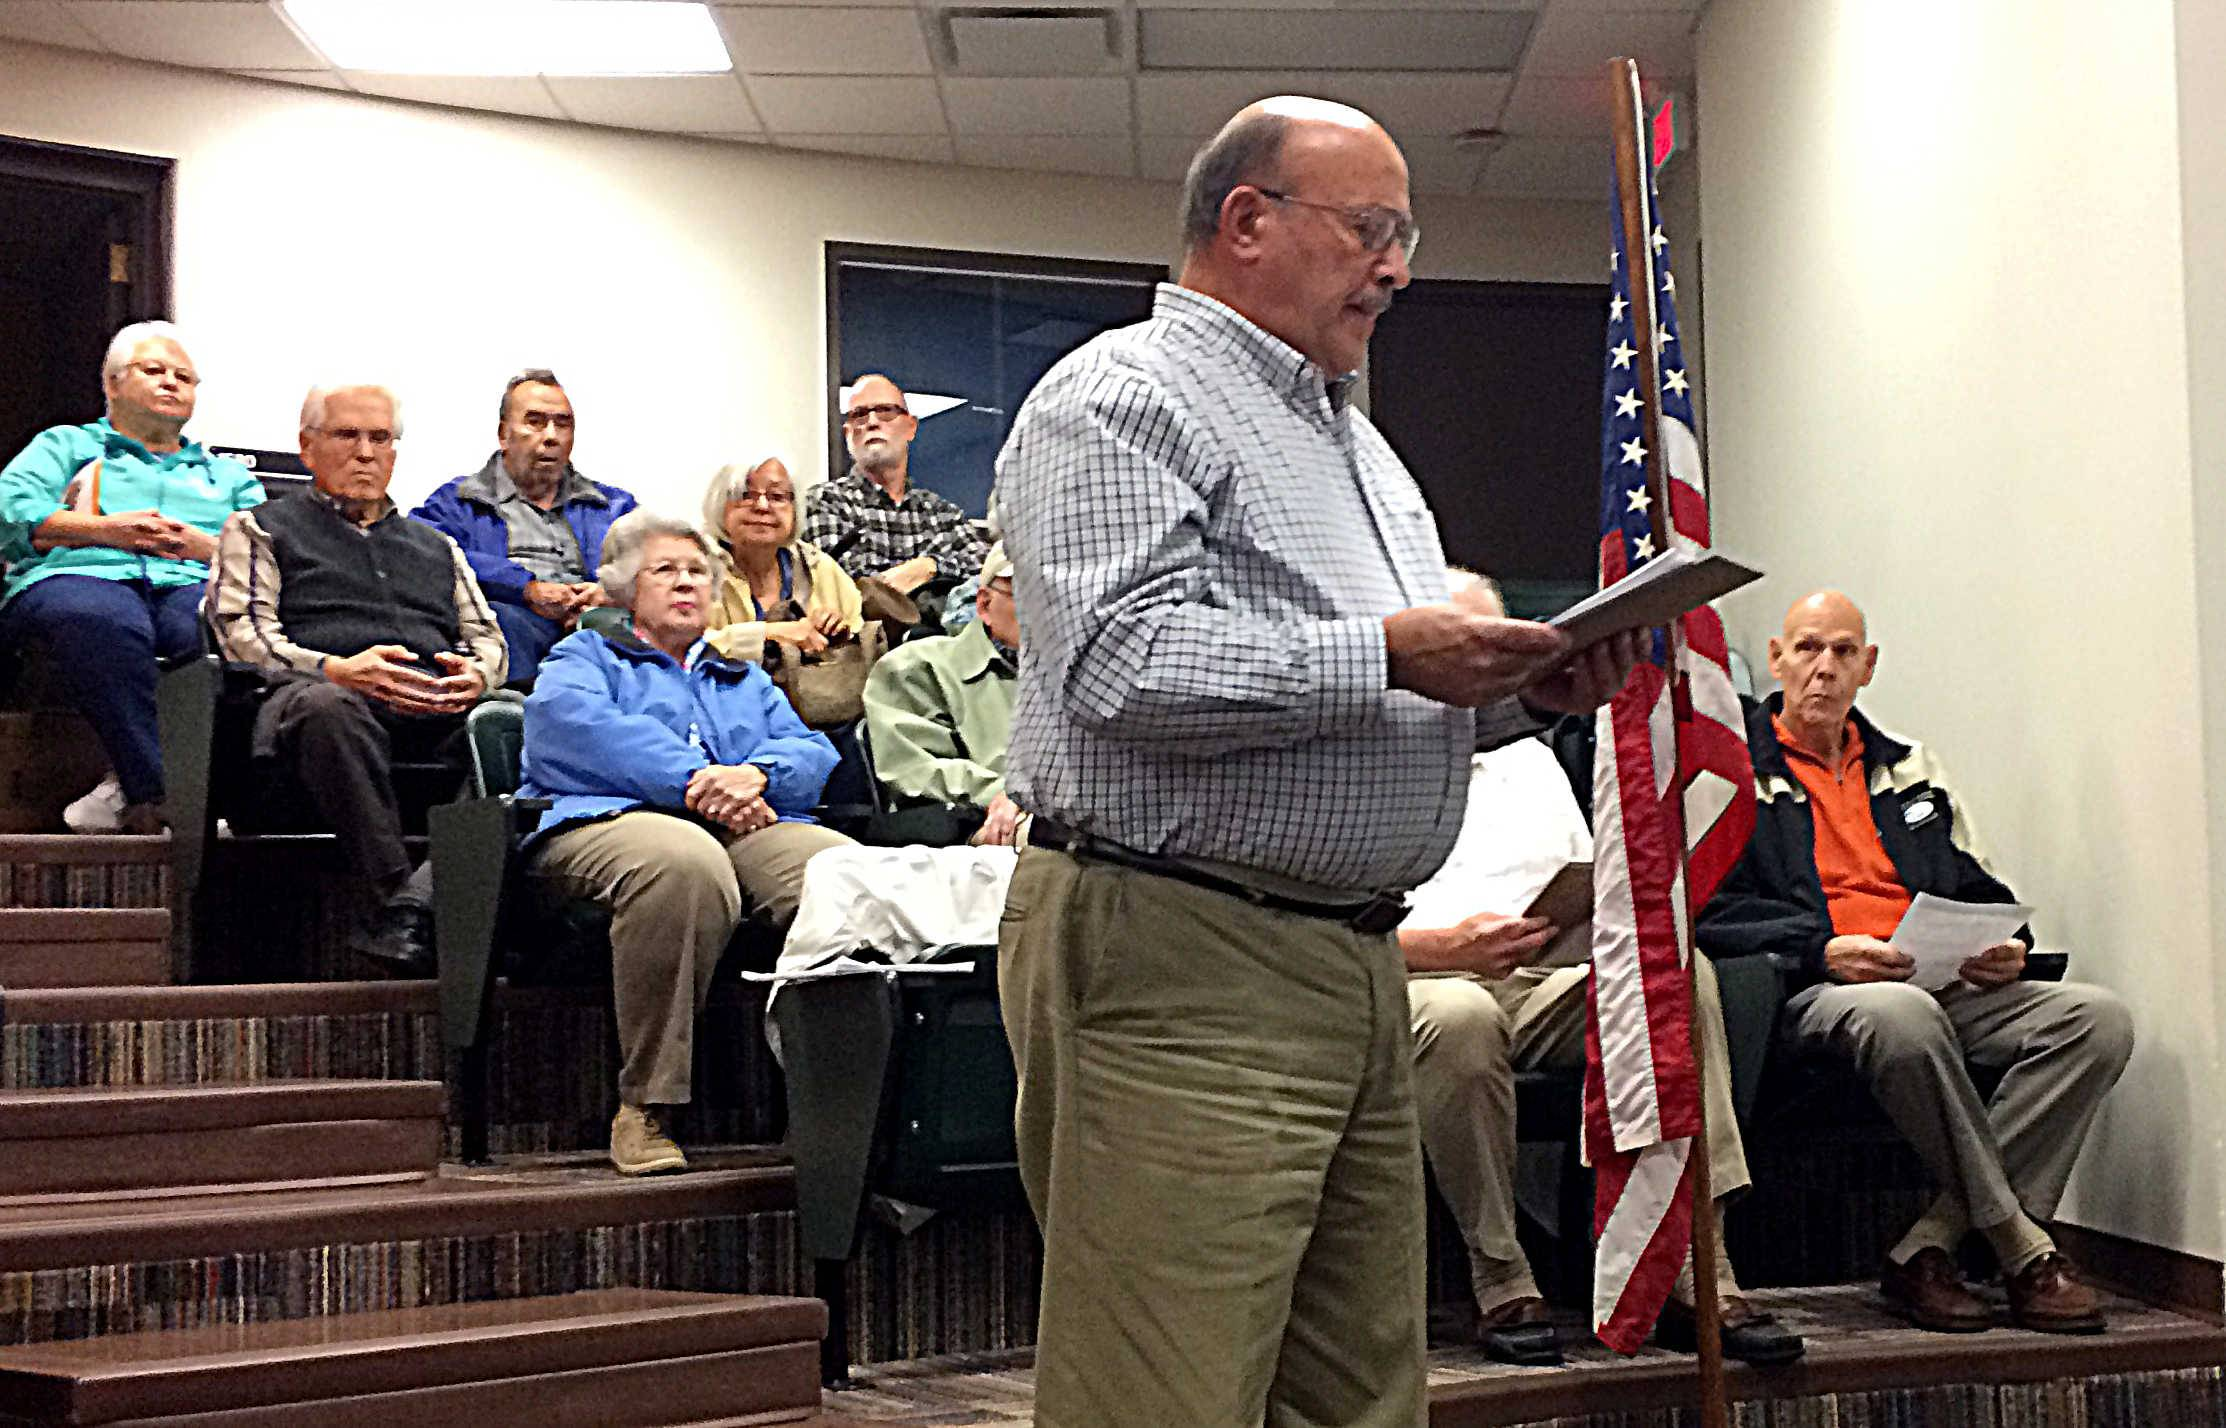 Paul Bernardoni, a resident of Carillon North in Grayslake, says he and many in his subdivision are unhappy with tax levy increases for next year approved Thursday night by the boards of Grayslake High District 127 and Grayslake Elementary District 46. Here, Bernardoni speaks about tax concerns to the District 127 board in October.